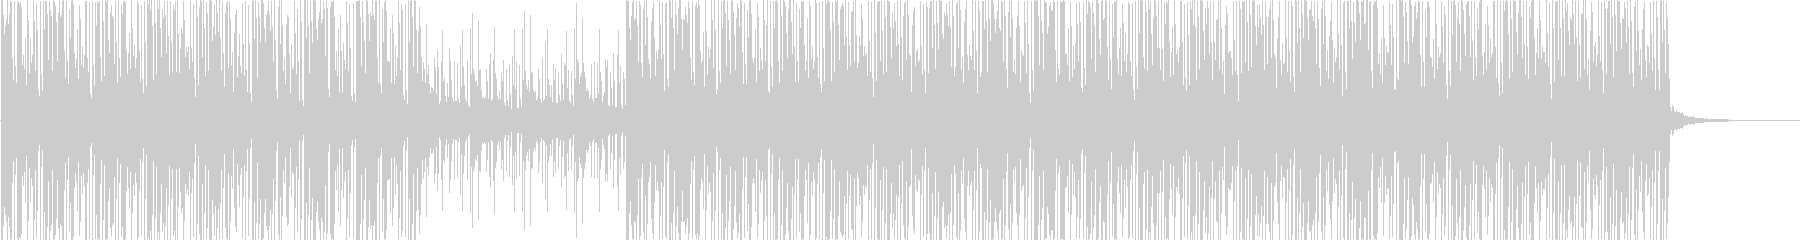 80s-90s style electronic music's unreproduced waveform